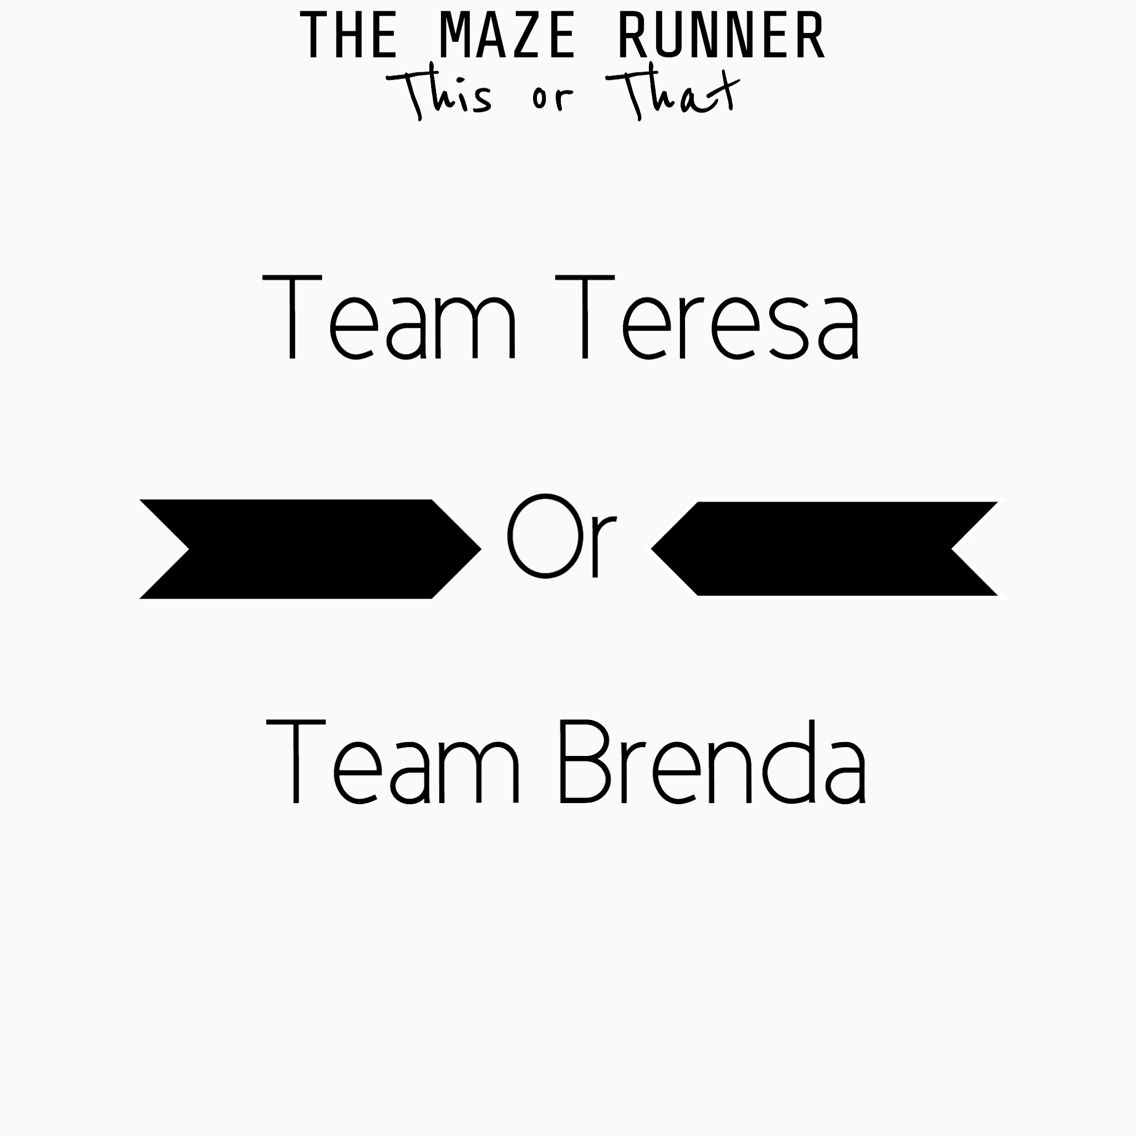 OR better yet, Thominho or Newtmas or Newtinho. I all of